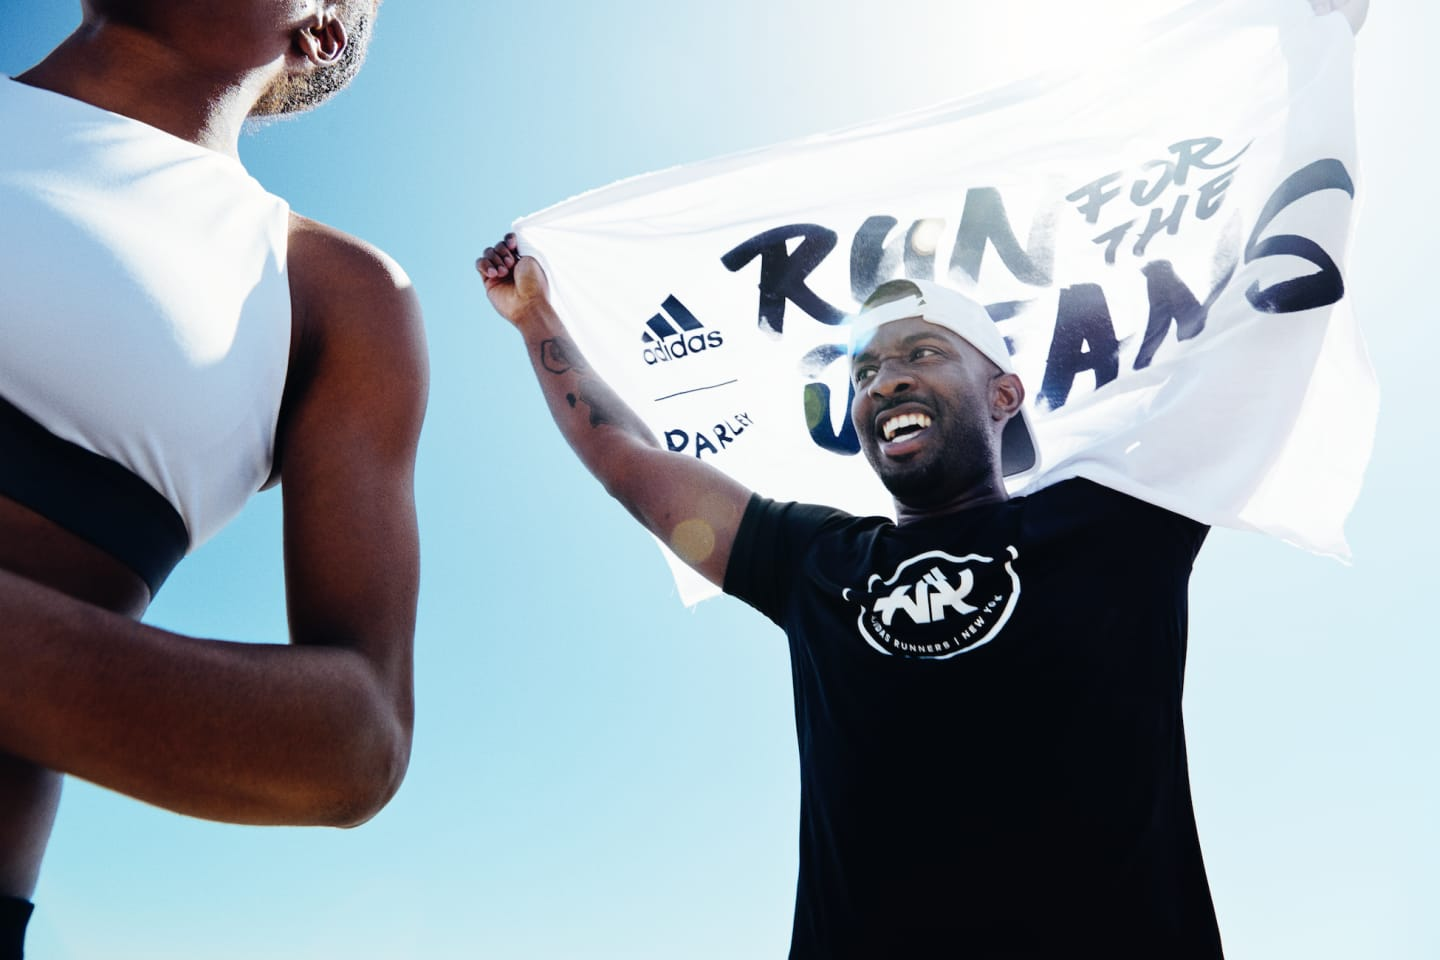 Man wearing black t-shirt holding up white flag in black lettering, Run for the Oceans, running, runners, event, sport, purpose, sustainability, adidas